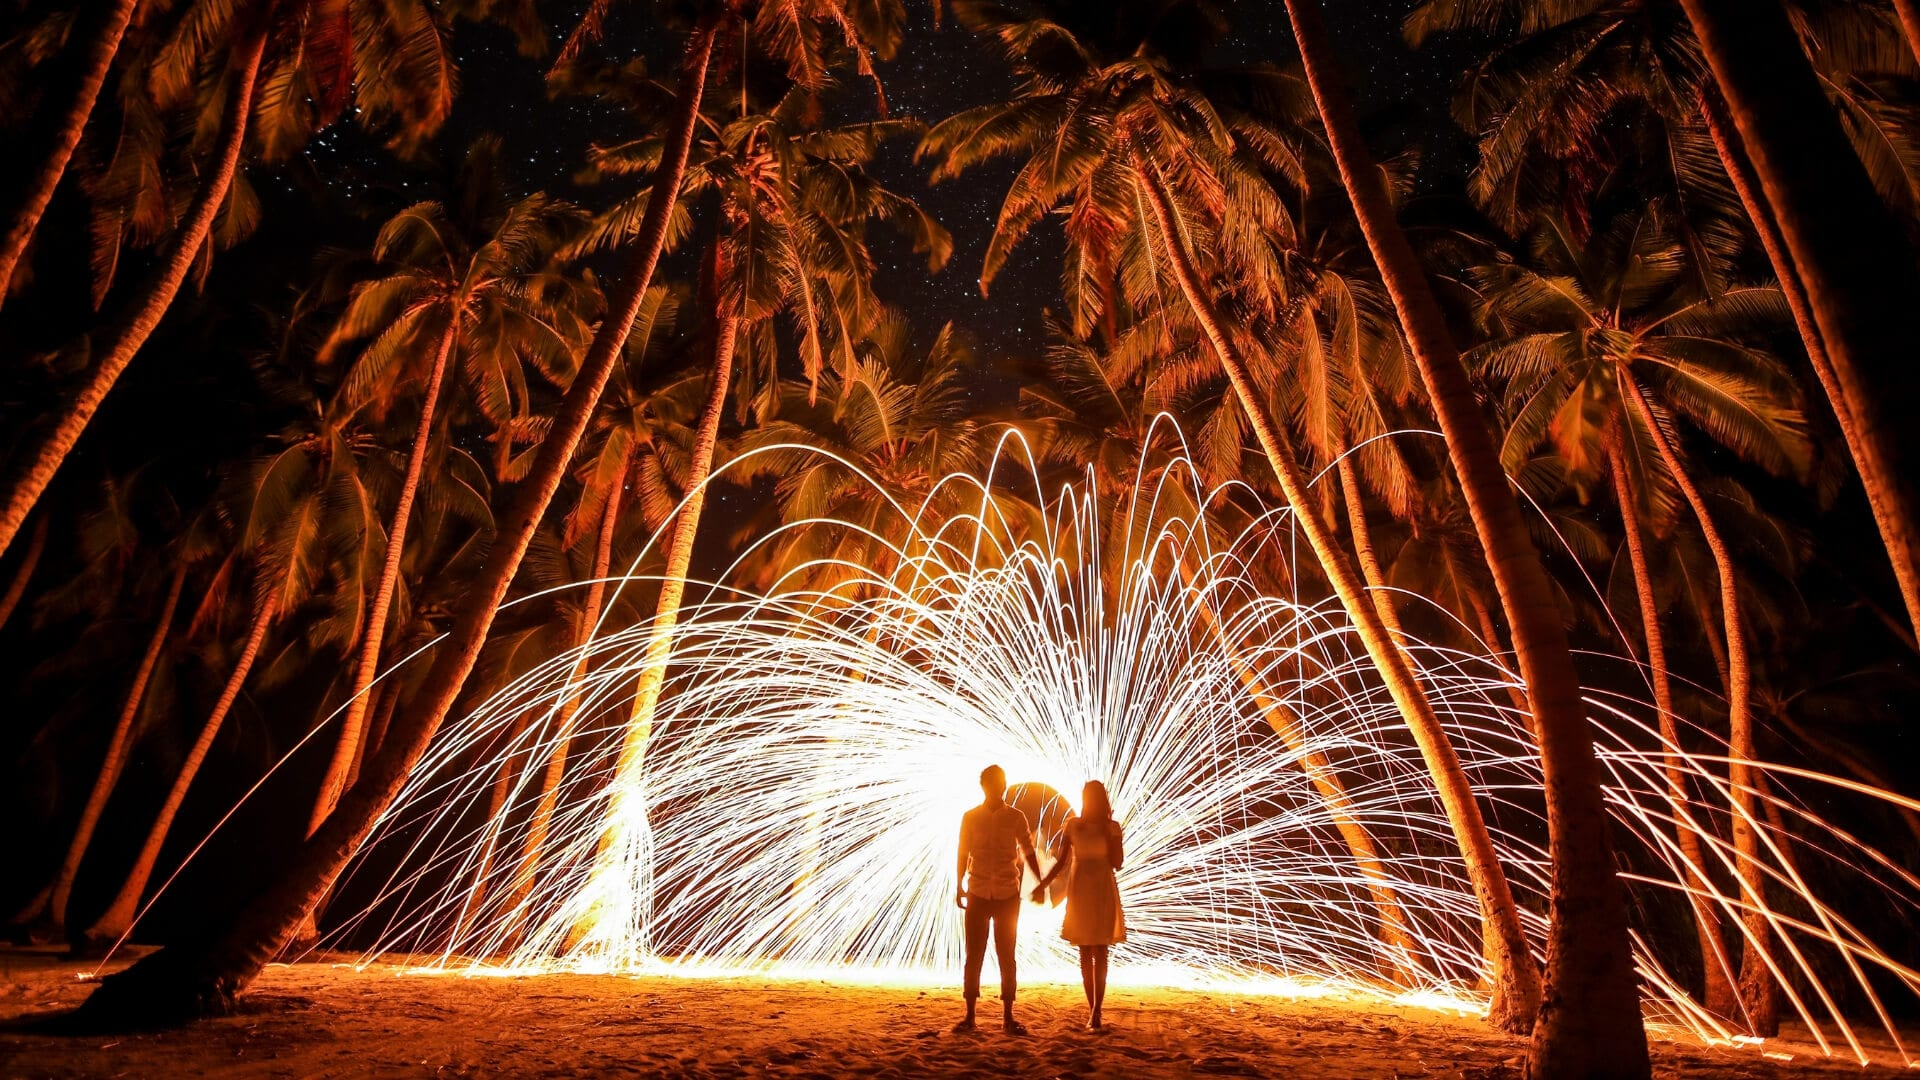 A couple is walking under palm trees and fireworks on their honeymoon on a beach.